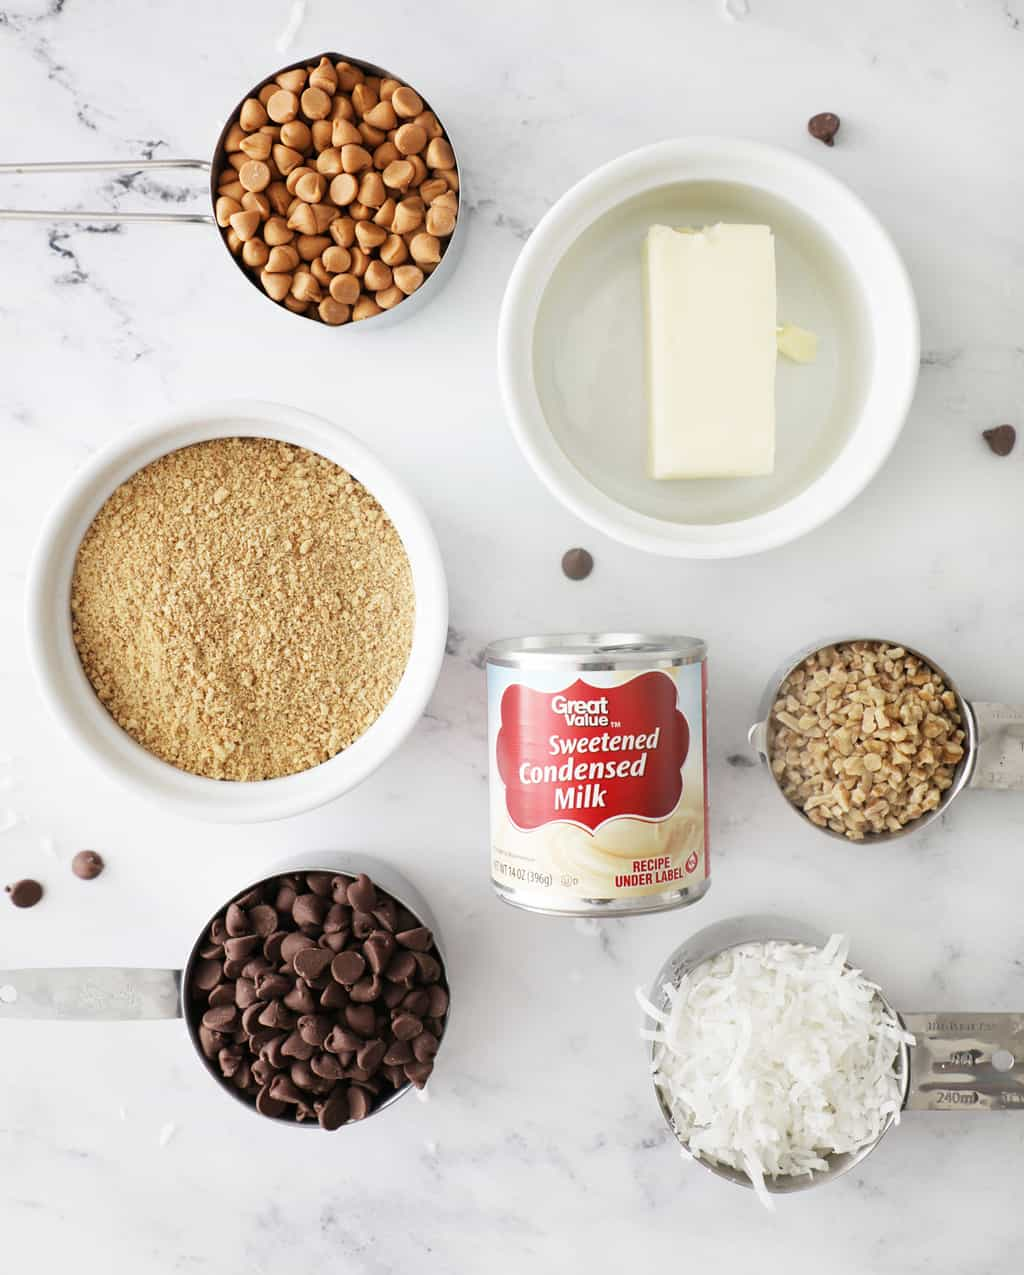 the ingredients to make seven layer bars on a white marble countertop